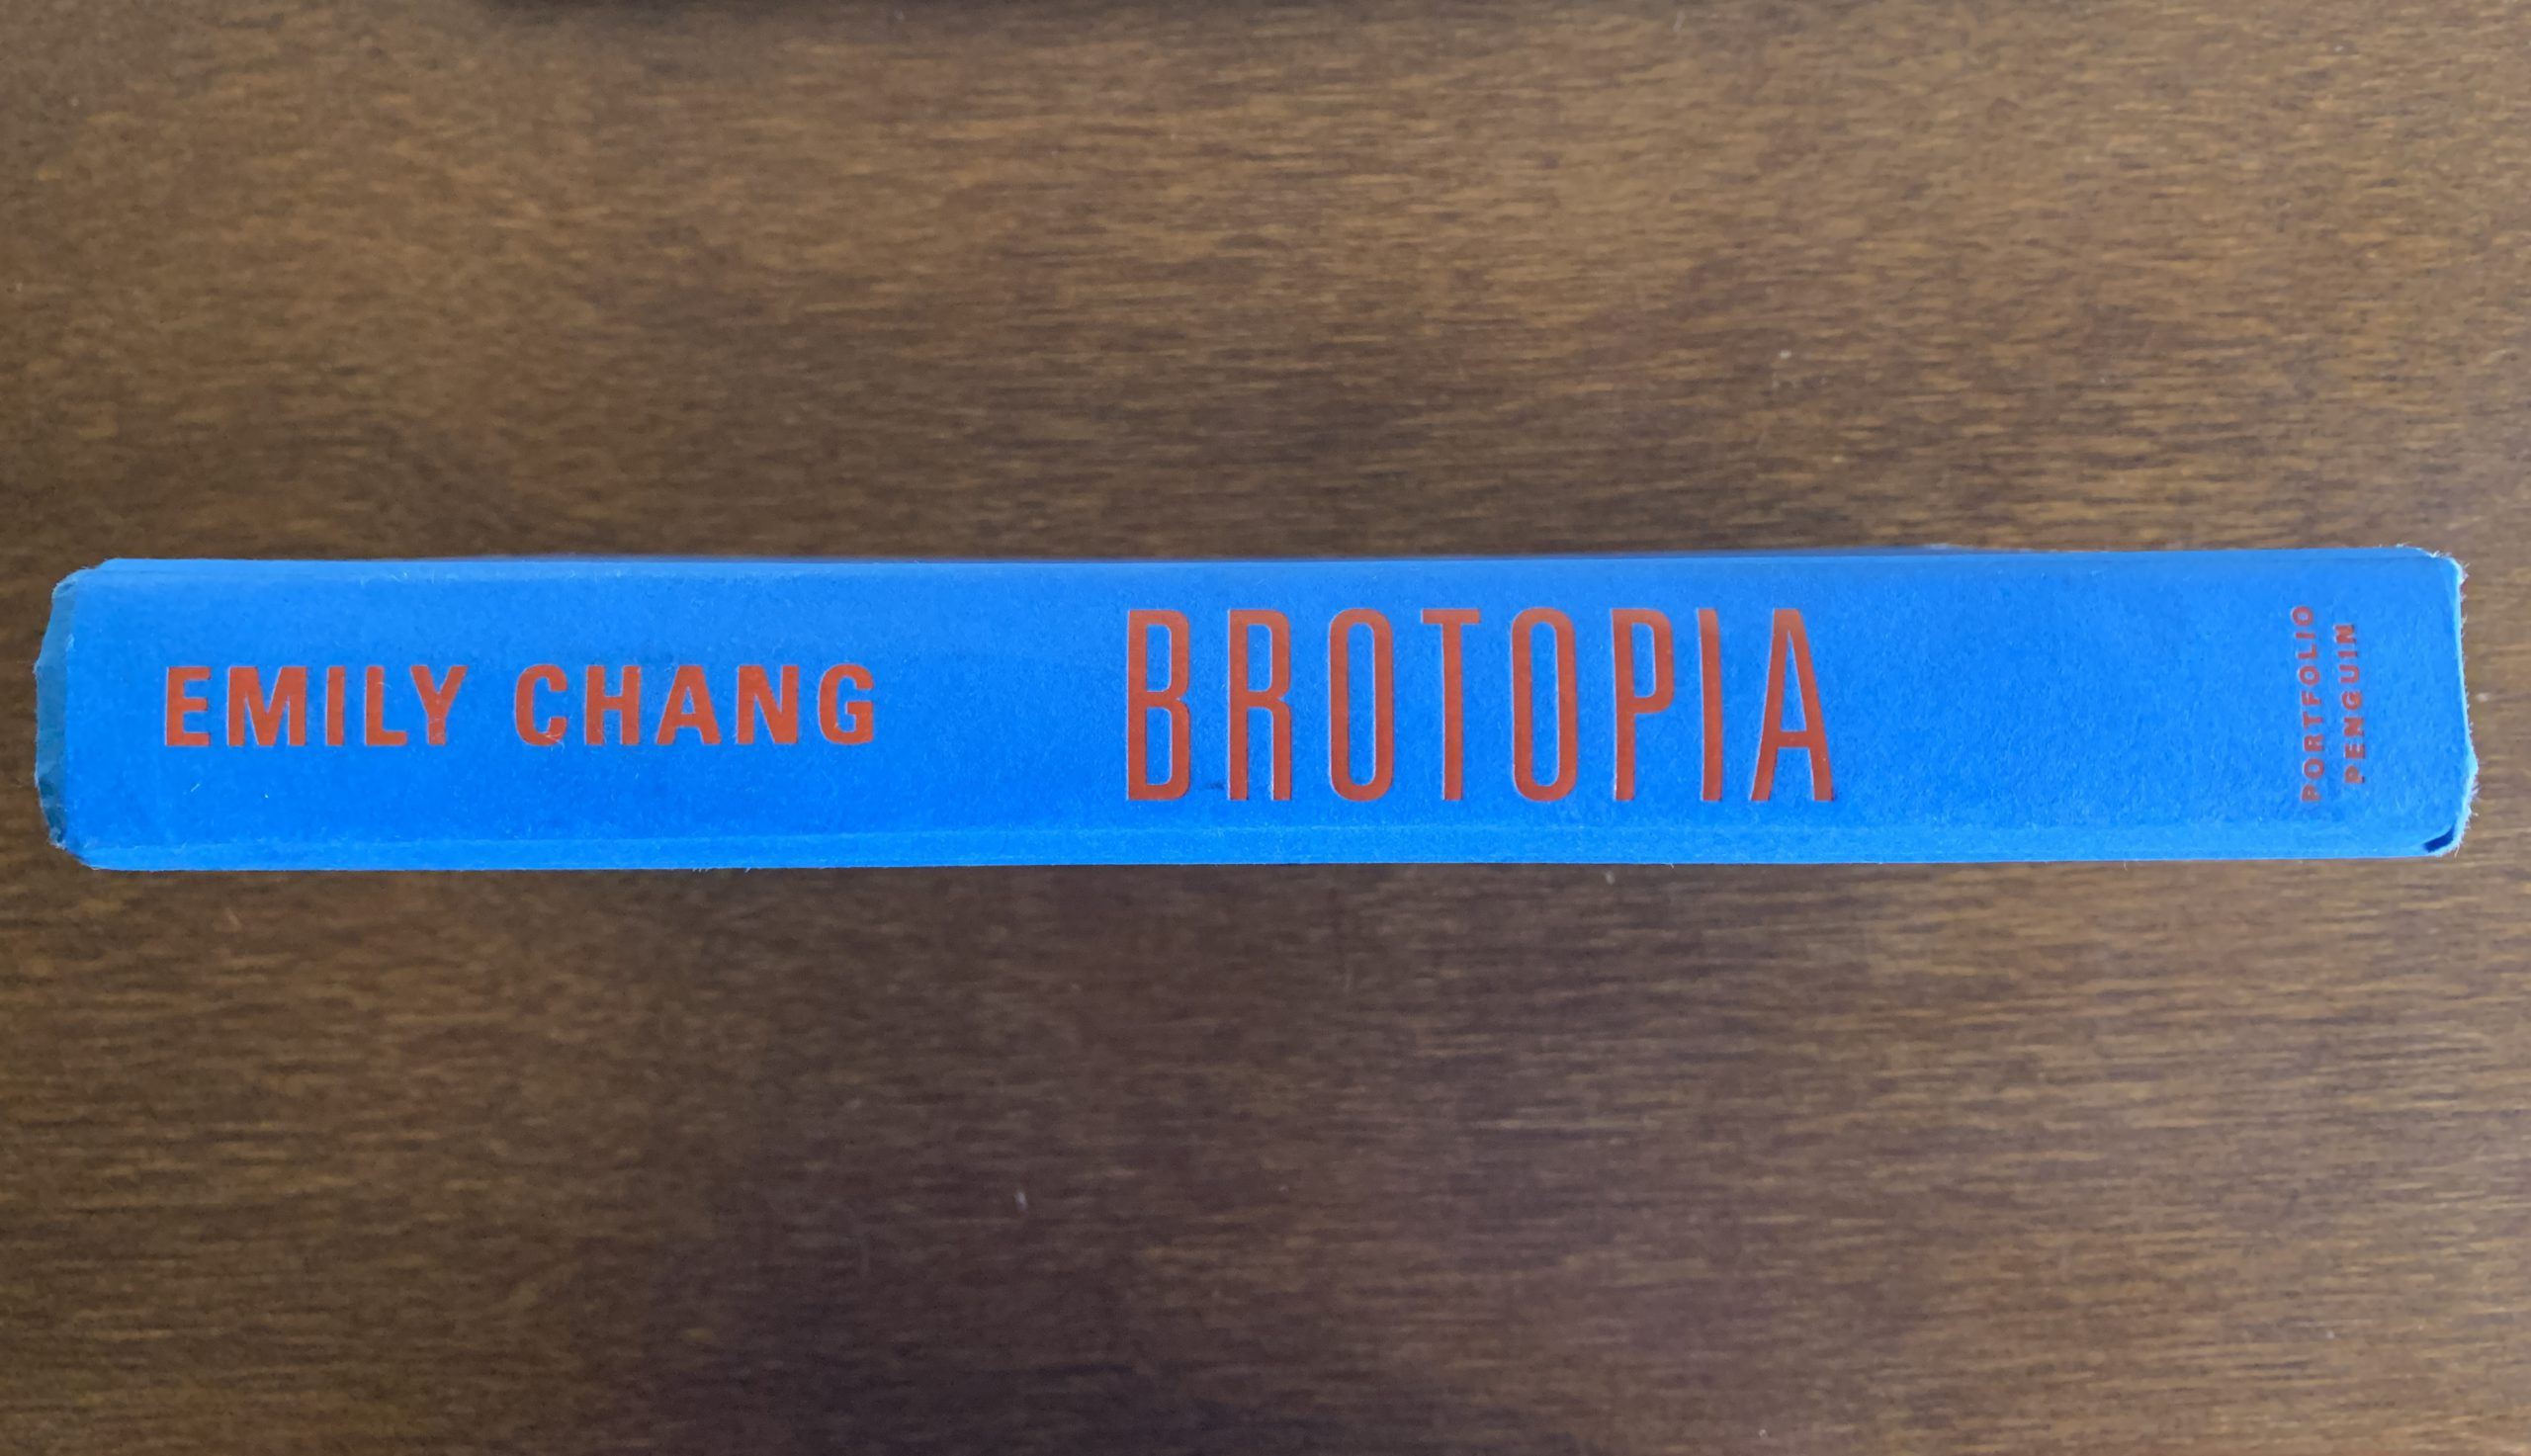 Brotopia - Chang Profile book